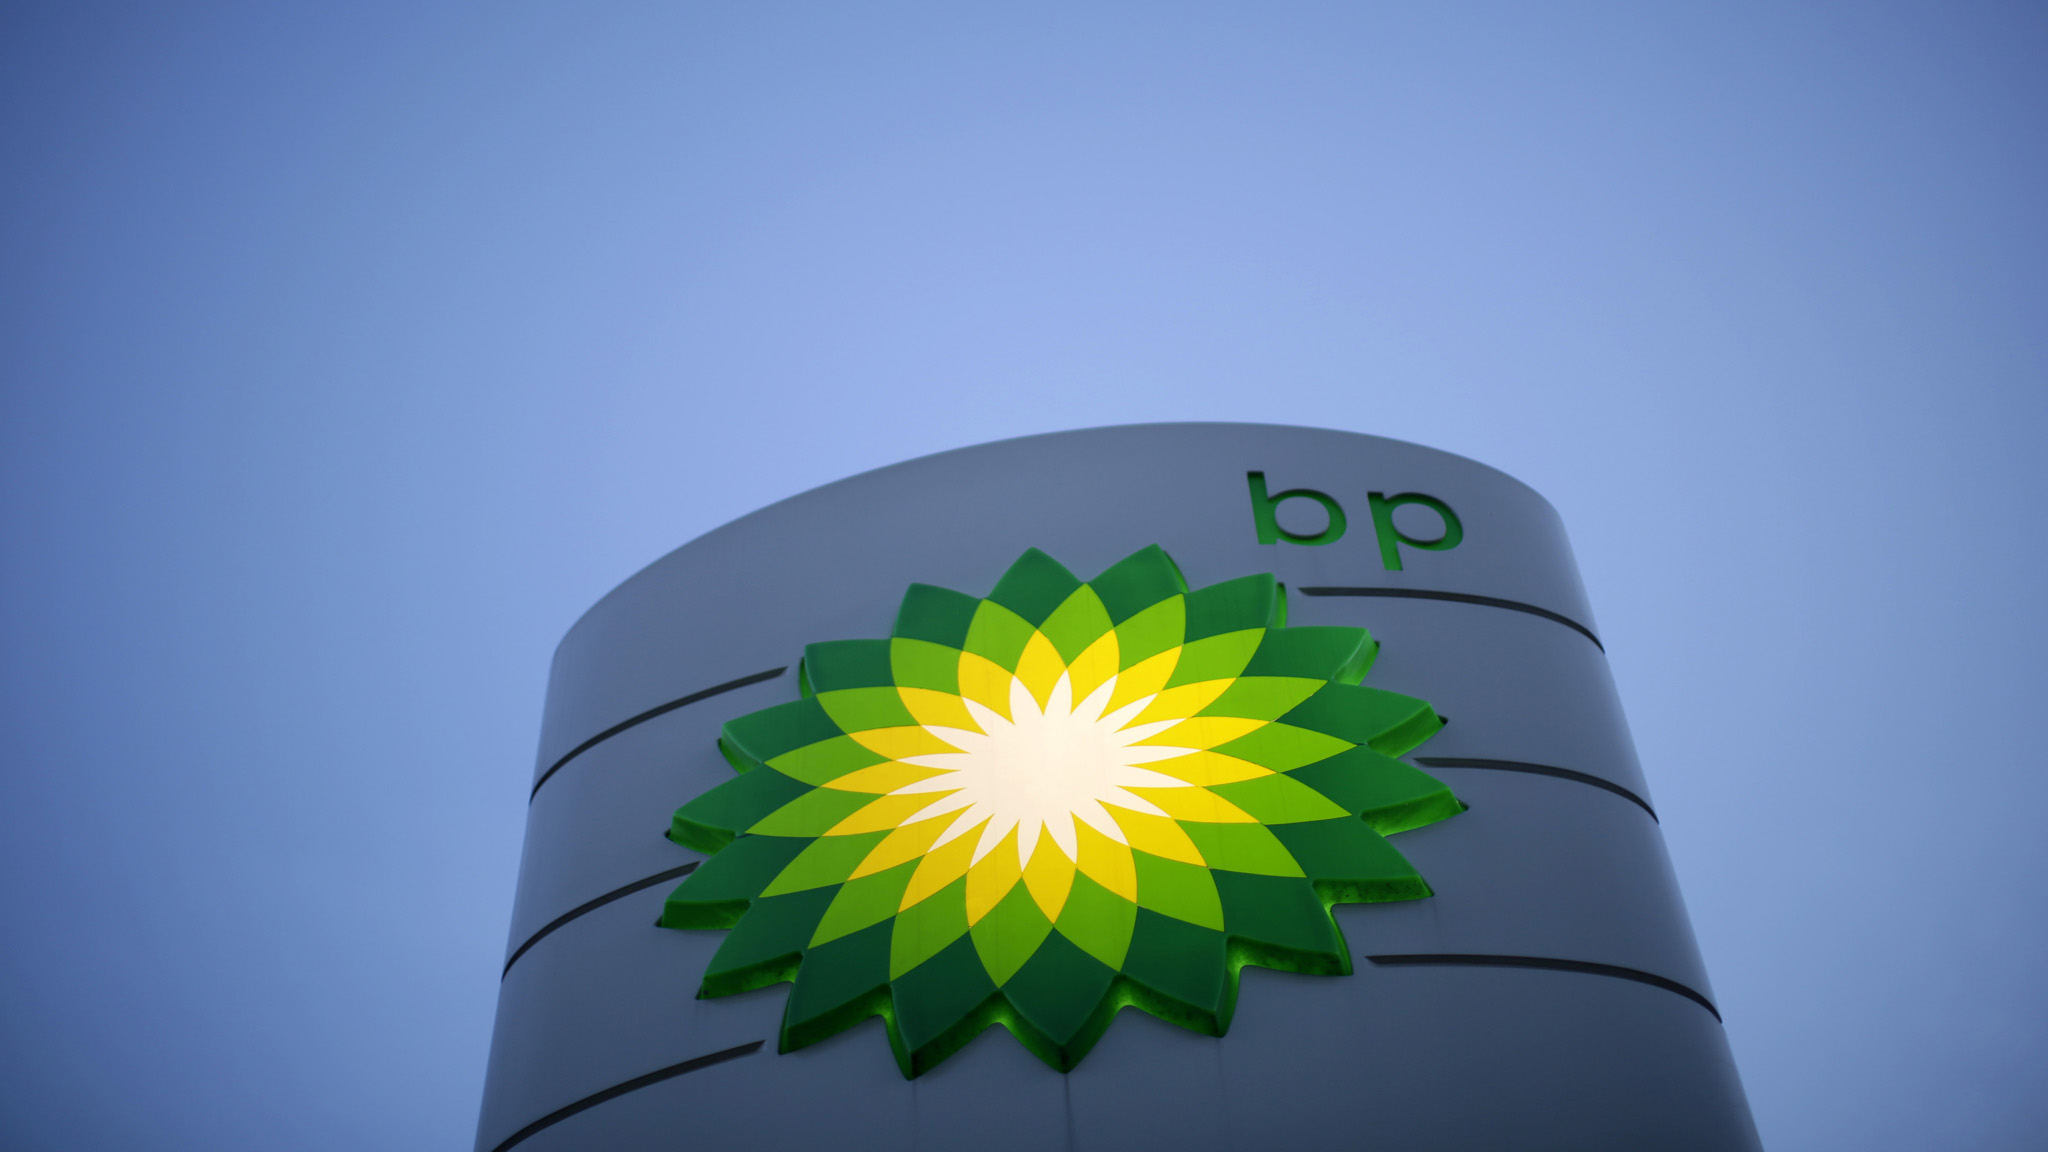 BP elevates two executives in possible succession move   Financial Times